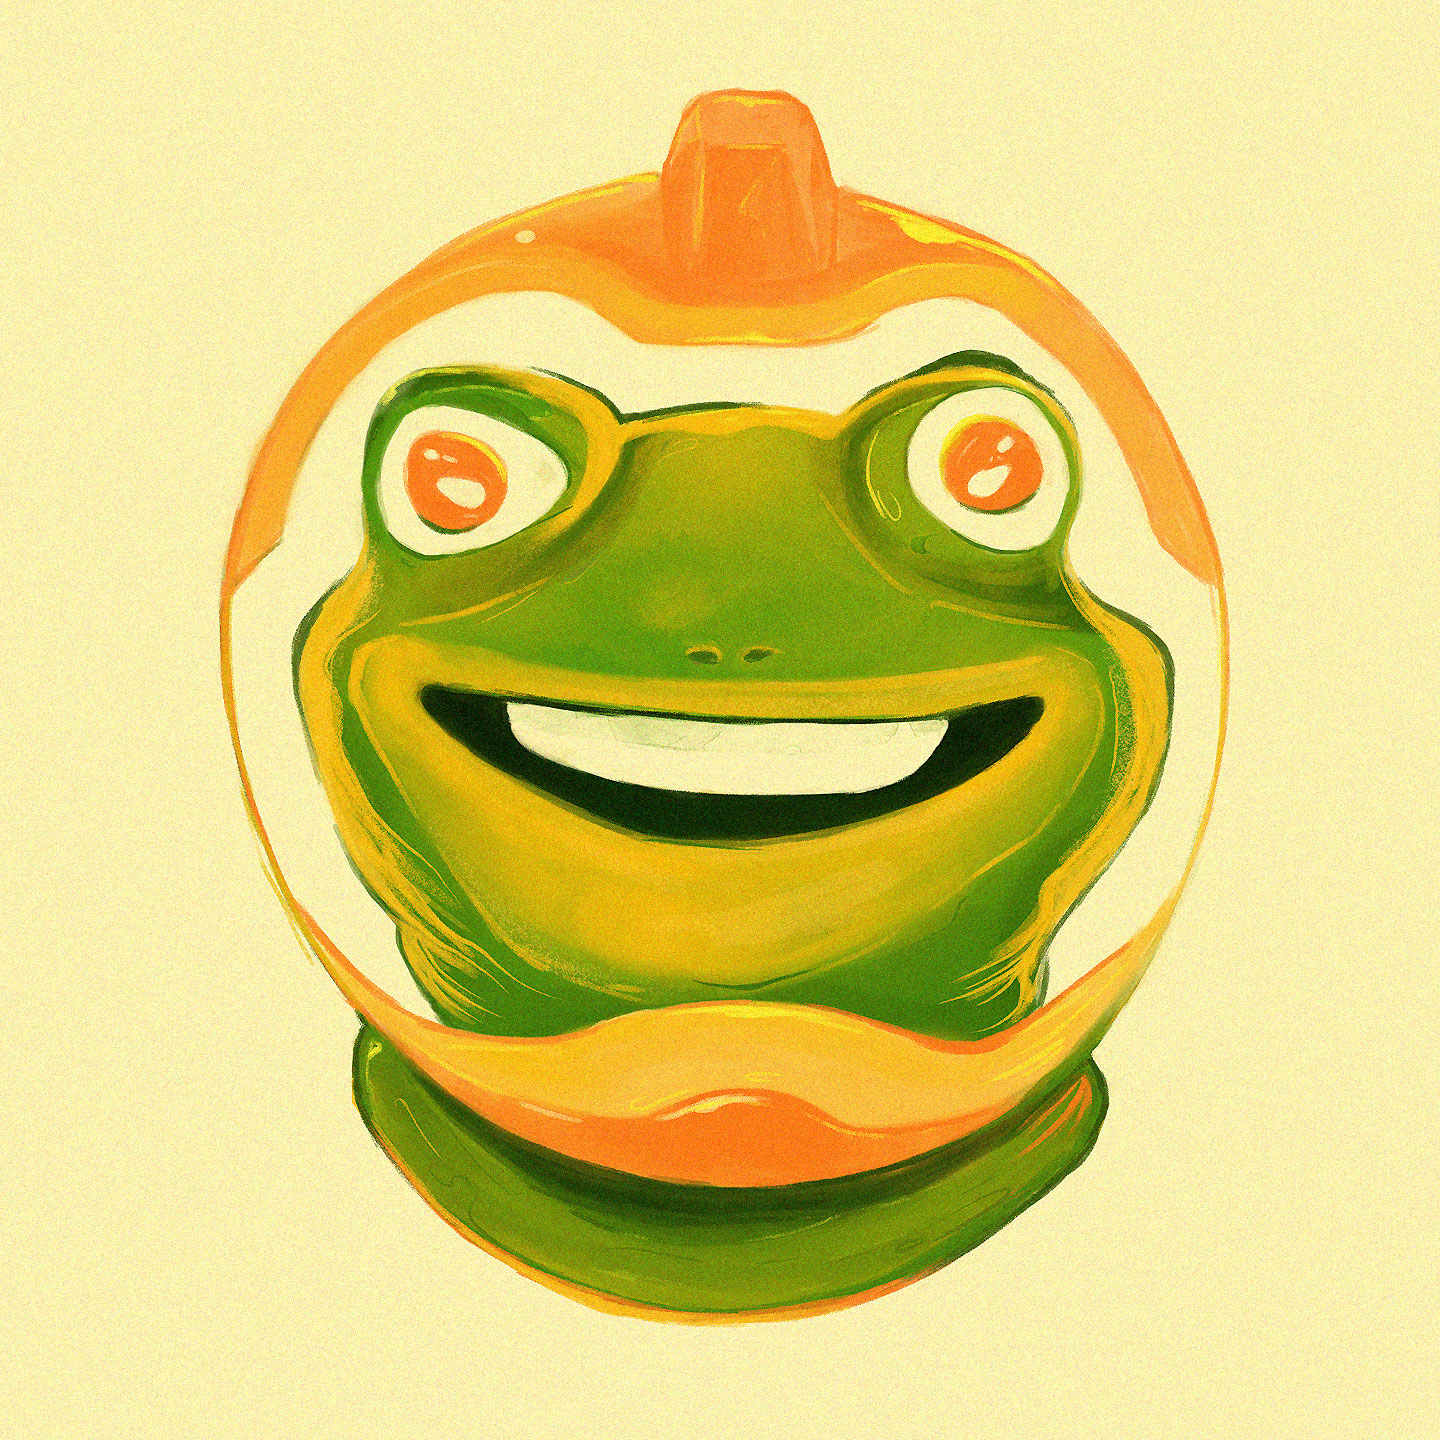 Frog, with human teeth, smiling